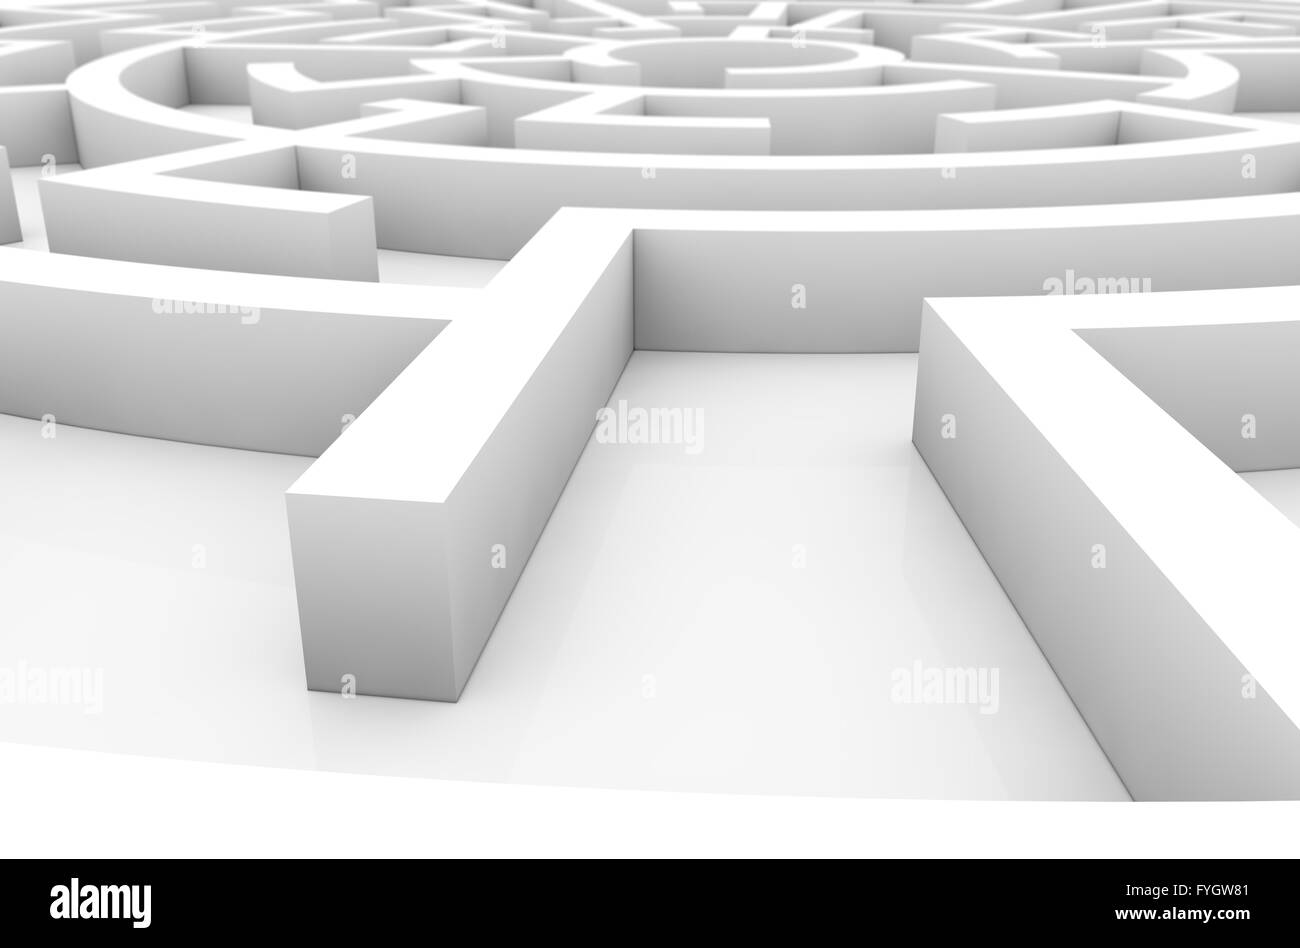 strategy concept: maze render - Stock Image